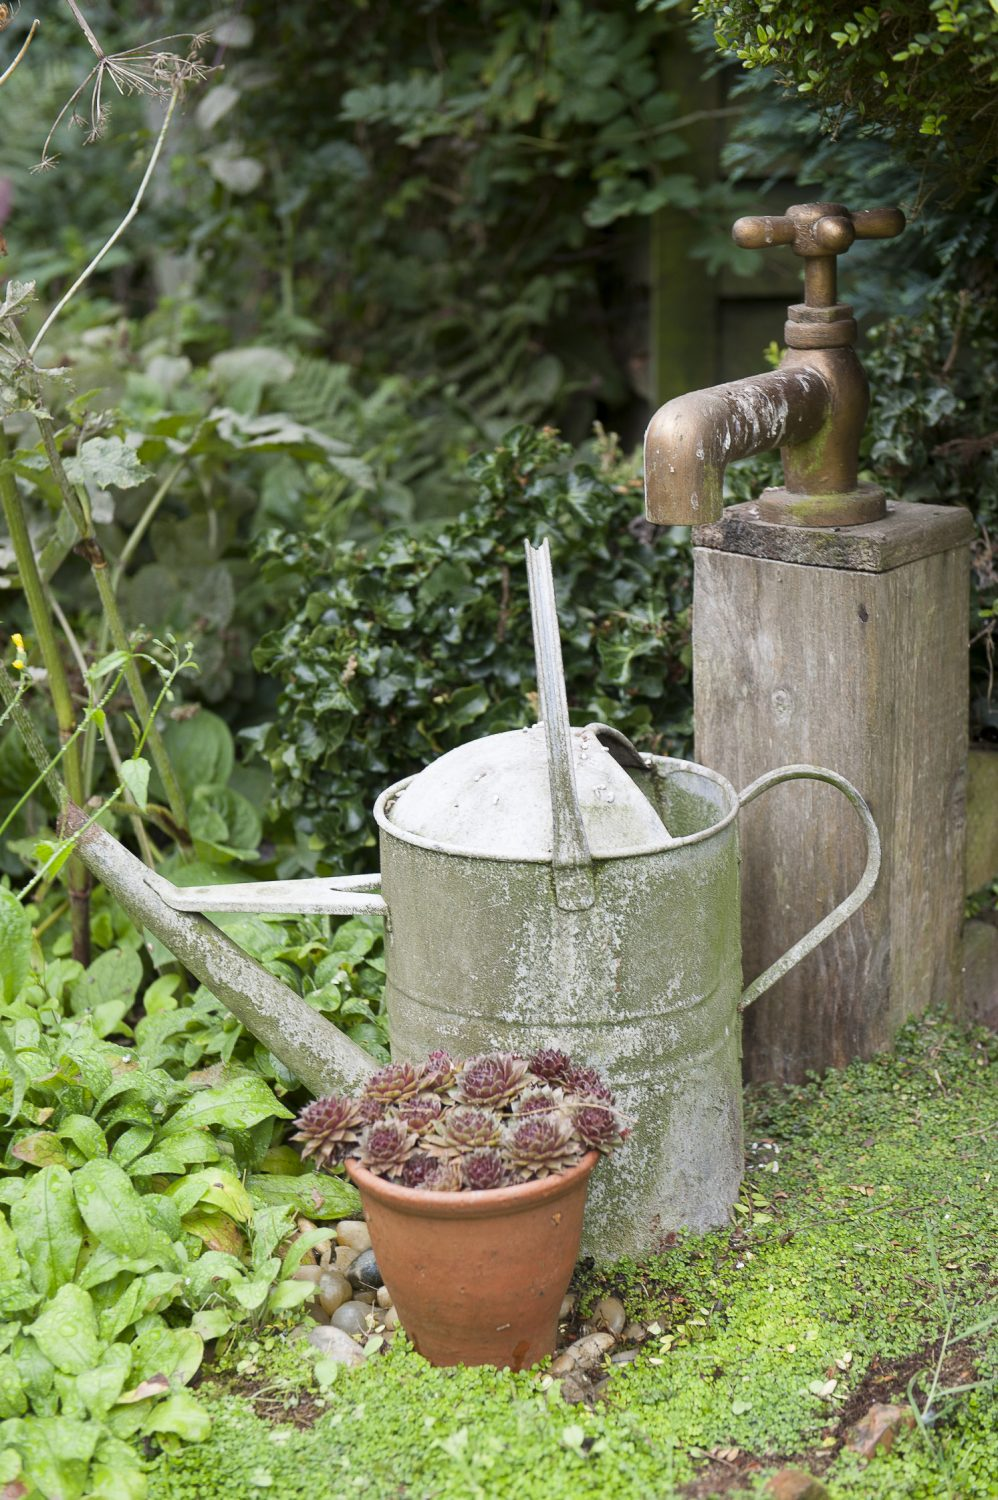 Dave created a water feature from an oversized tap and metal watering can